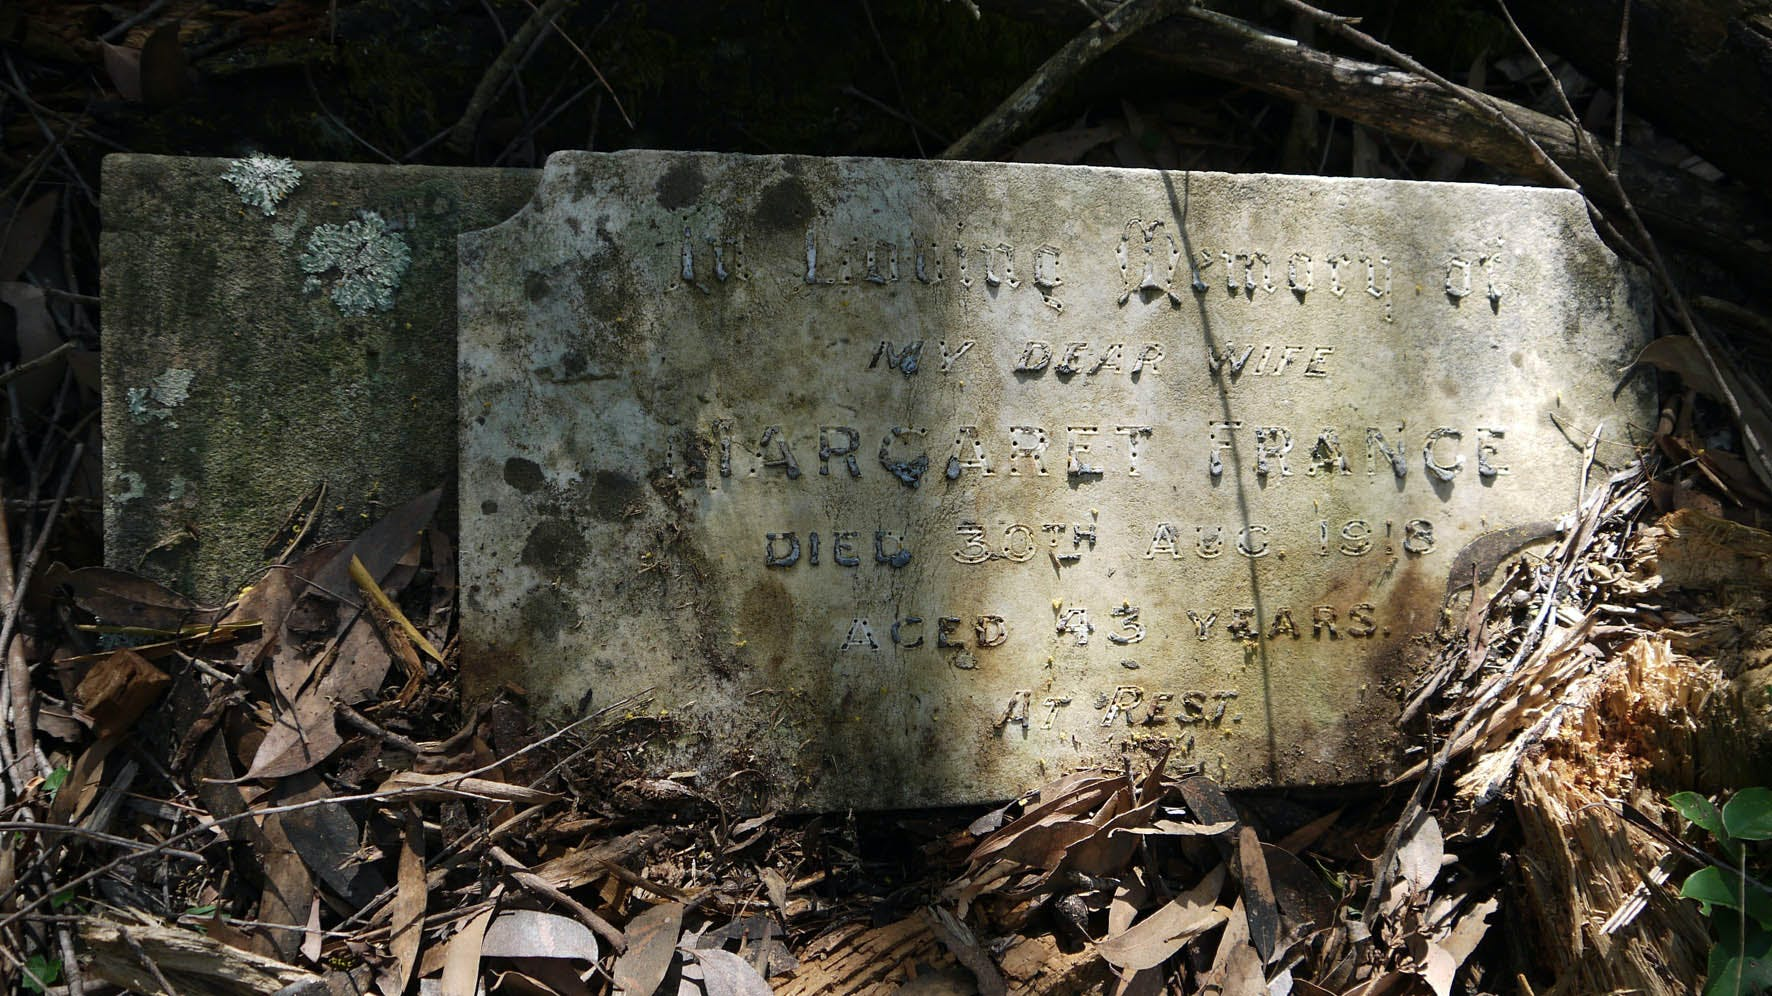 Lettering on many headstones has worn away or melted in bushfires